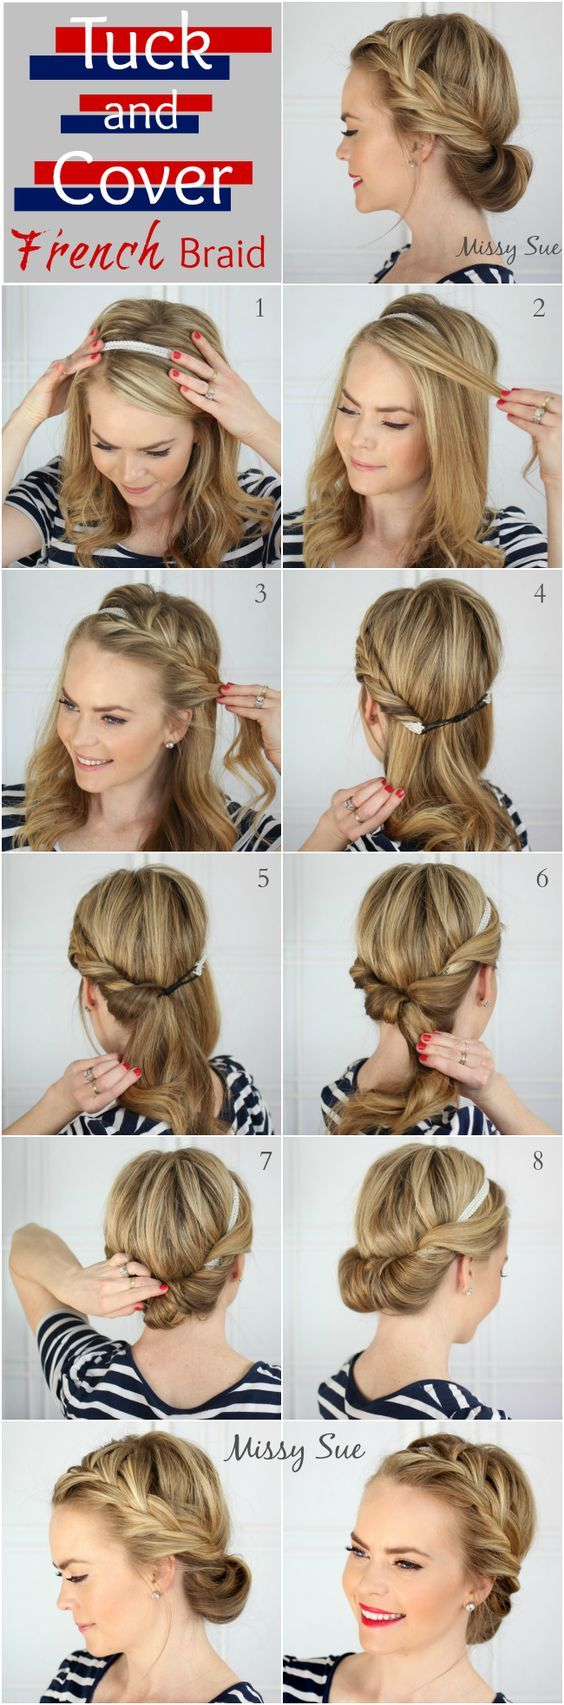 Photo of 11 Easy Step by Step Updo Tutorials for Beginners – Hair Wrapping Tutorials Petramode.info